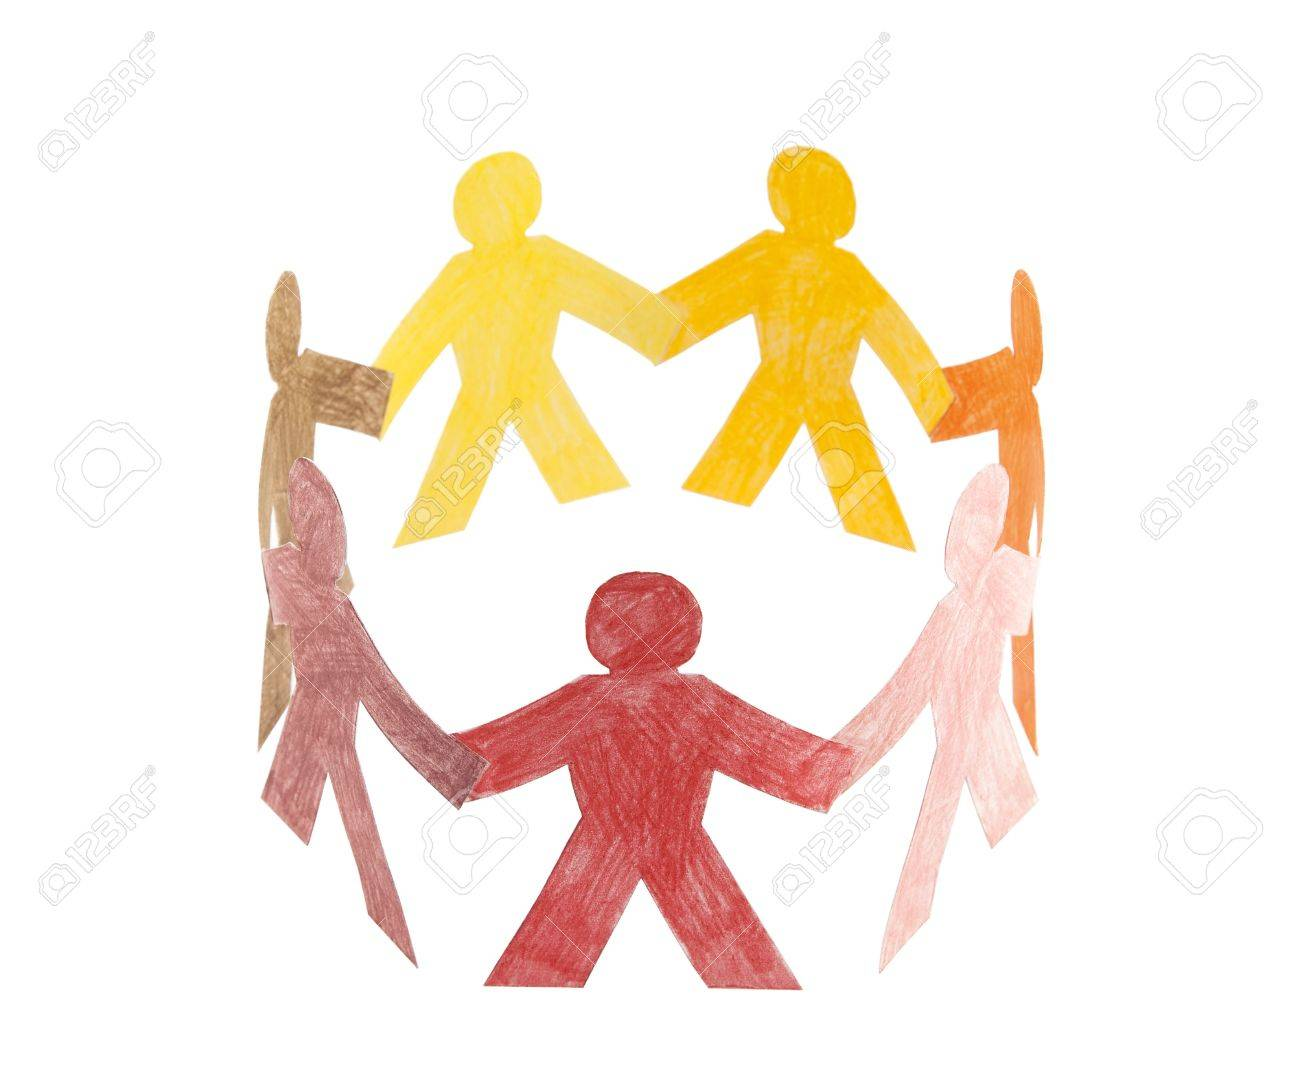 Circle of colorful people Stock Photo - 6755414